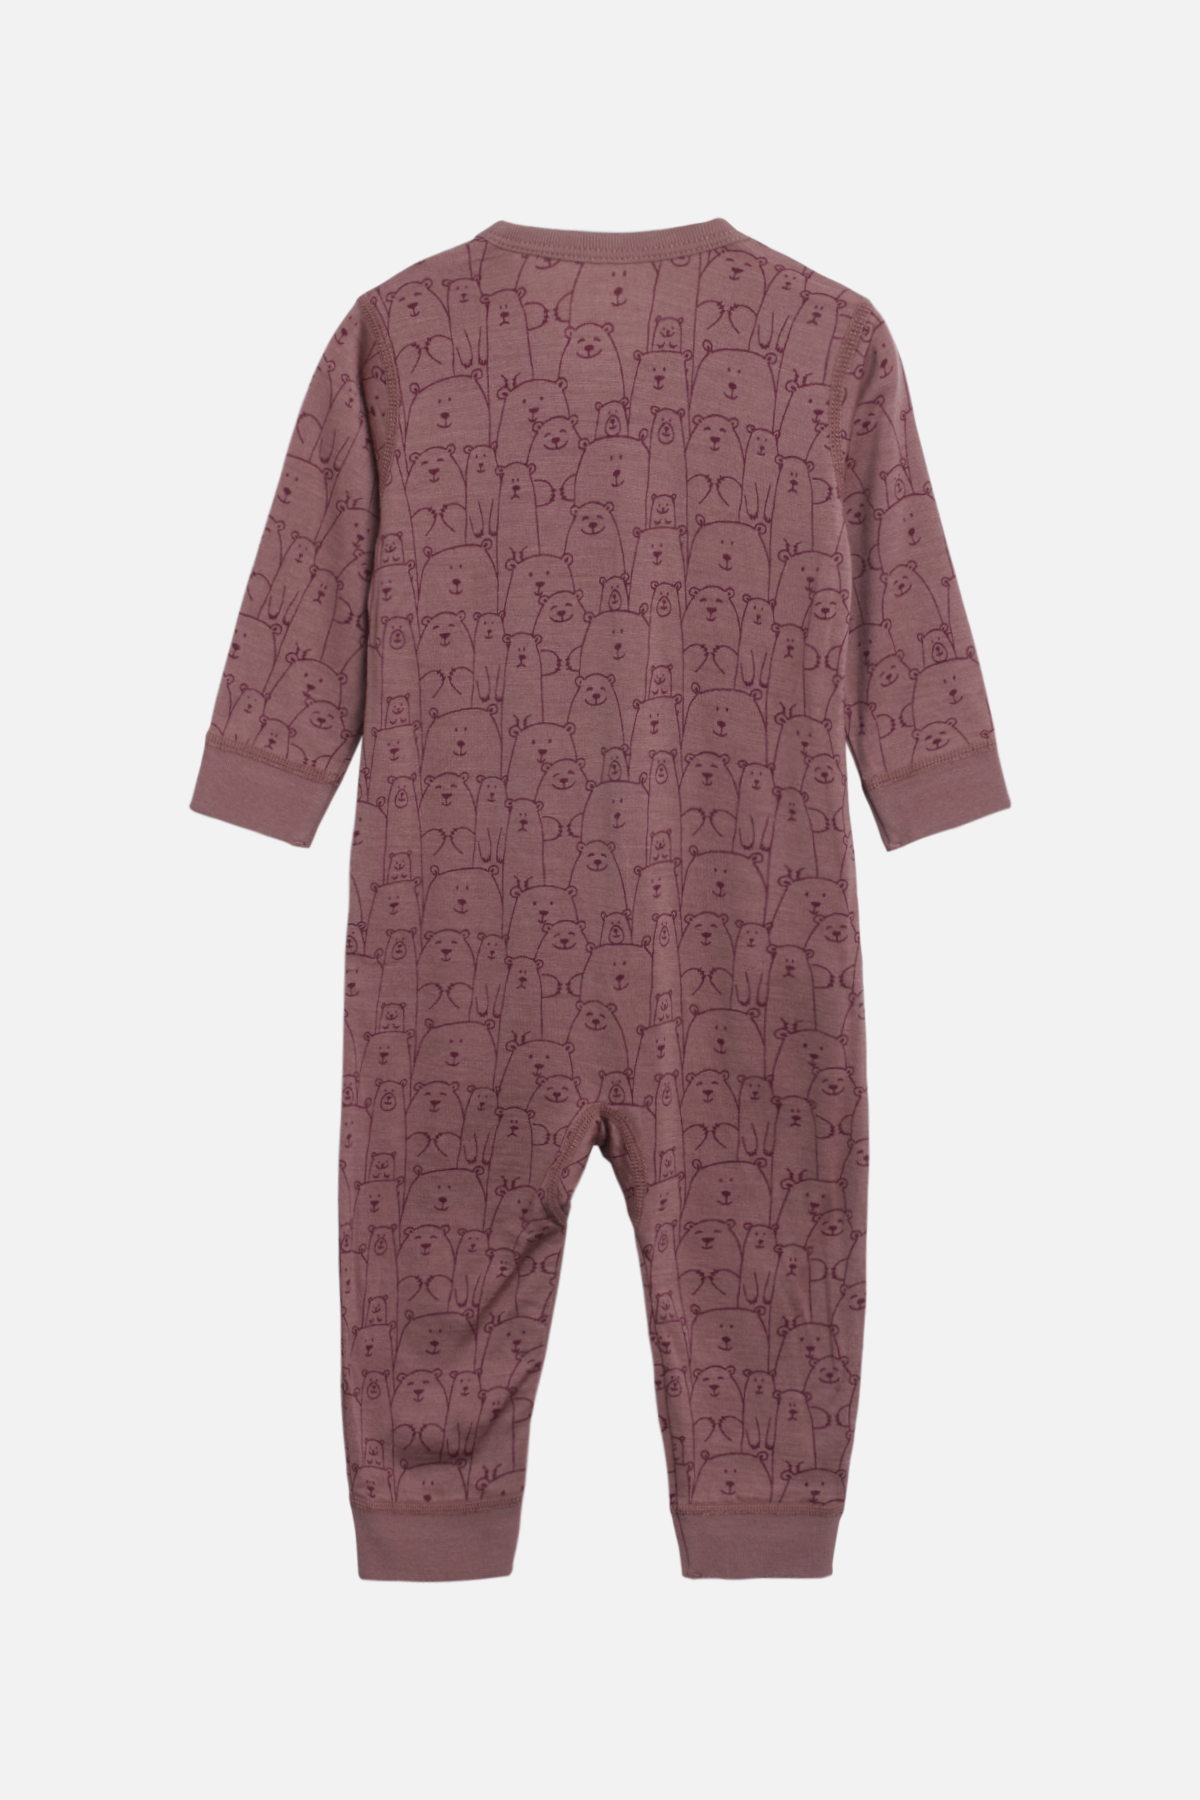 Wool/Silk - Mila - Nightwear